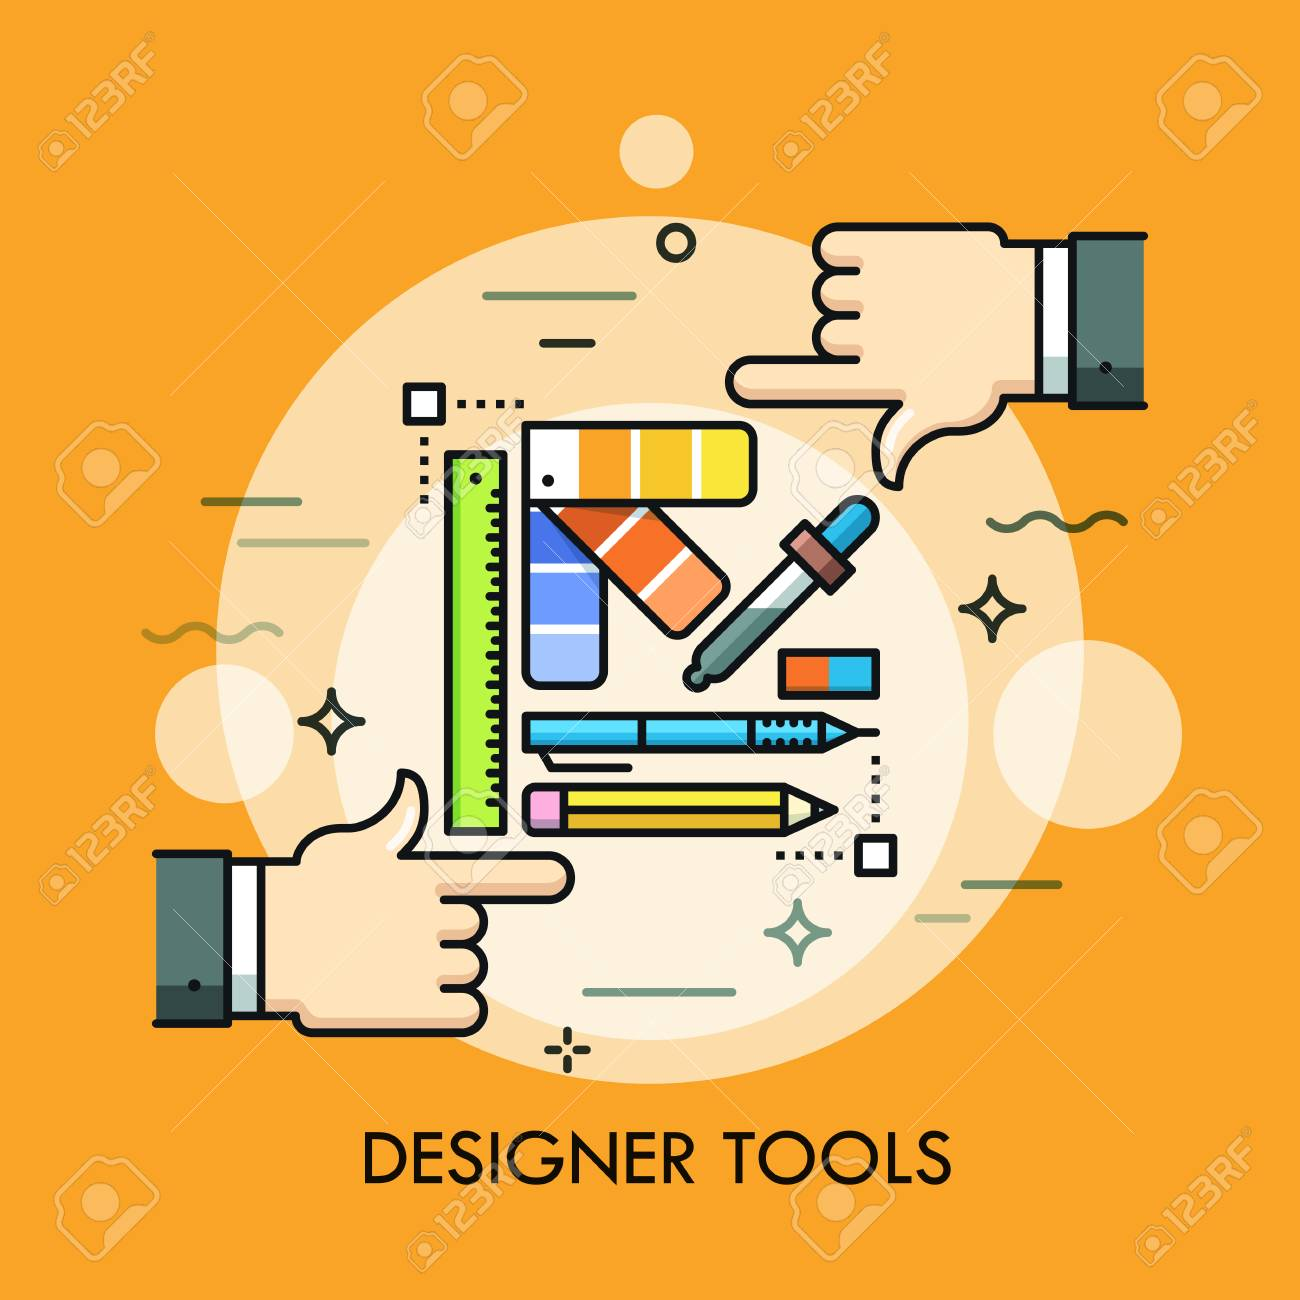 Color Palette Pen Pencil Ruler Eraser And Two Human Hands Royalty Free Cliparts Vectors And Stock Illustration Image 95281415